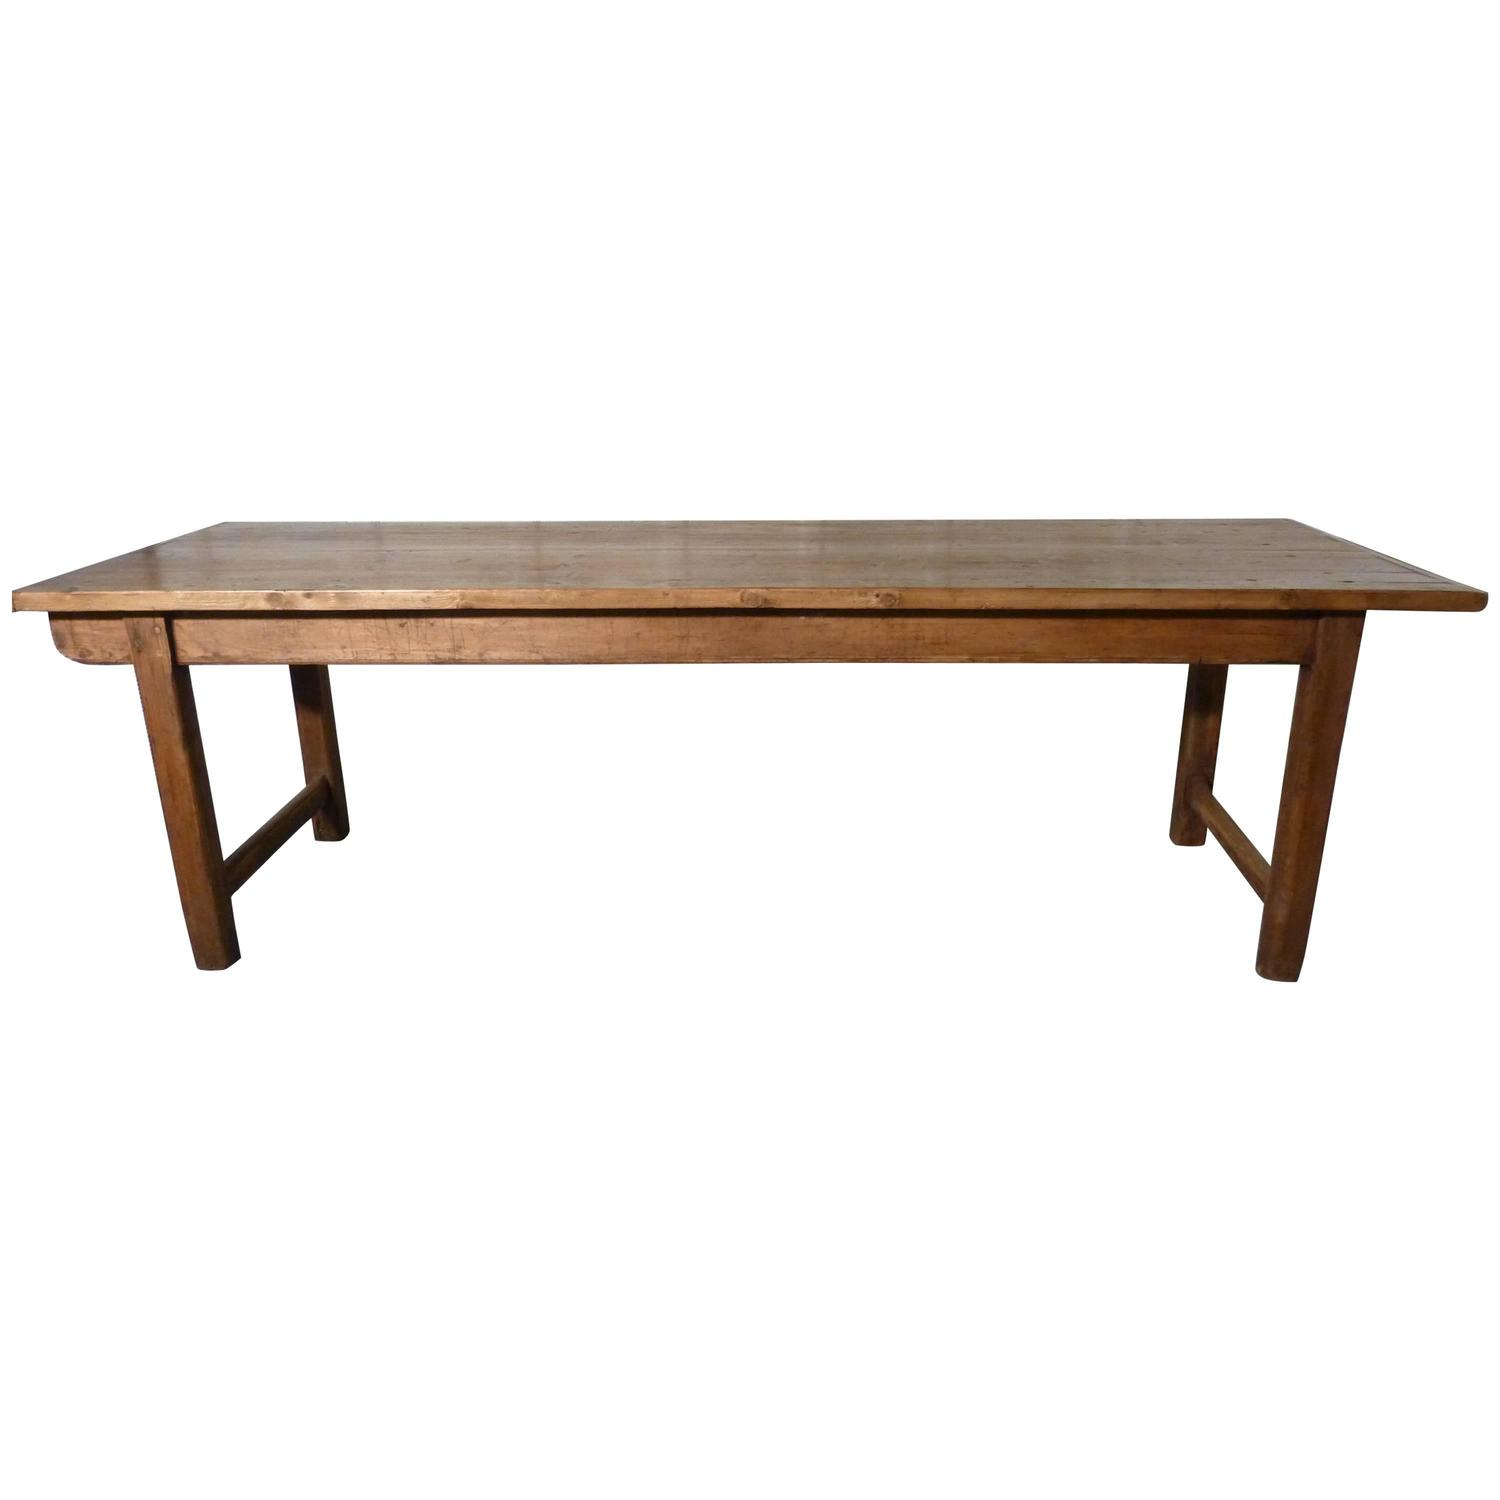 19th Century French Rustic Pine Table Cleated 2 Plank